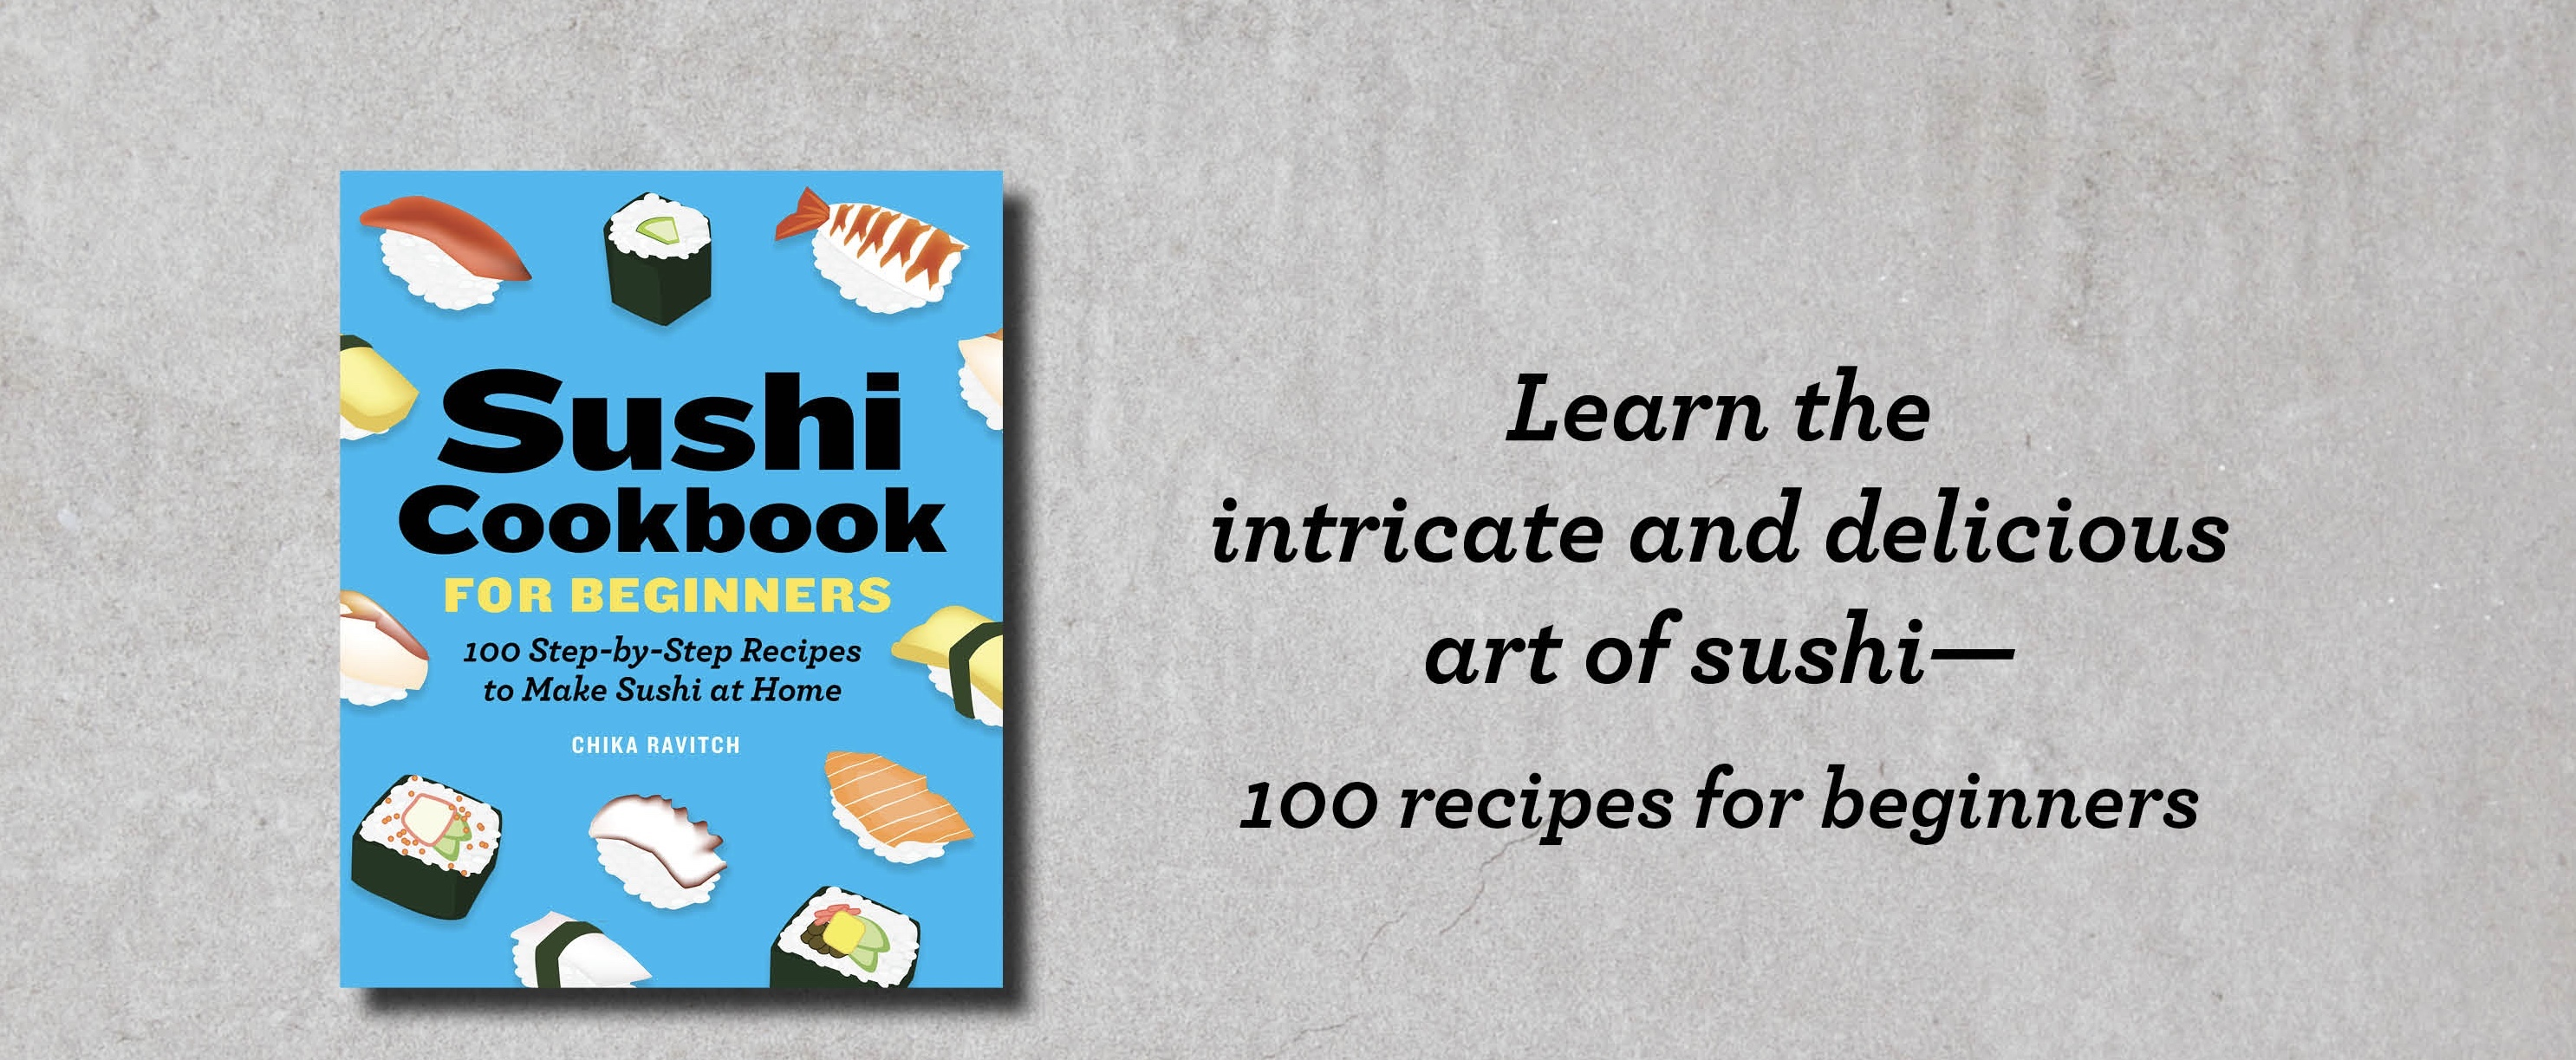 sushicookbookforbeginners_fb_business-1